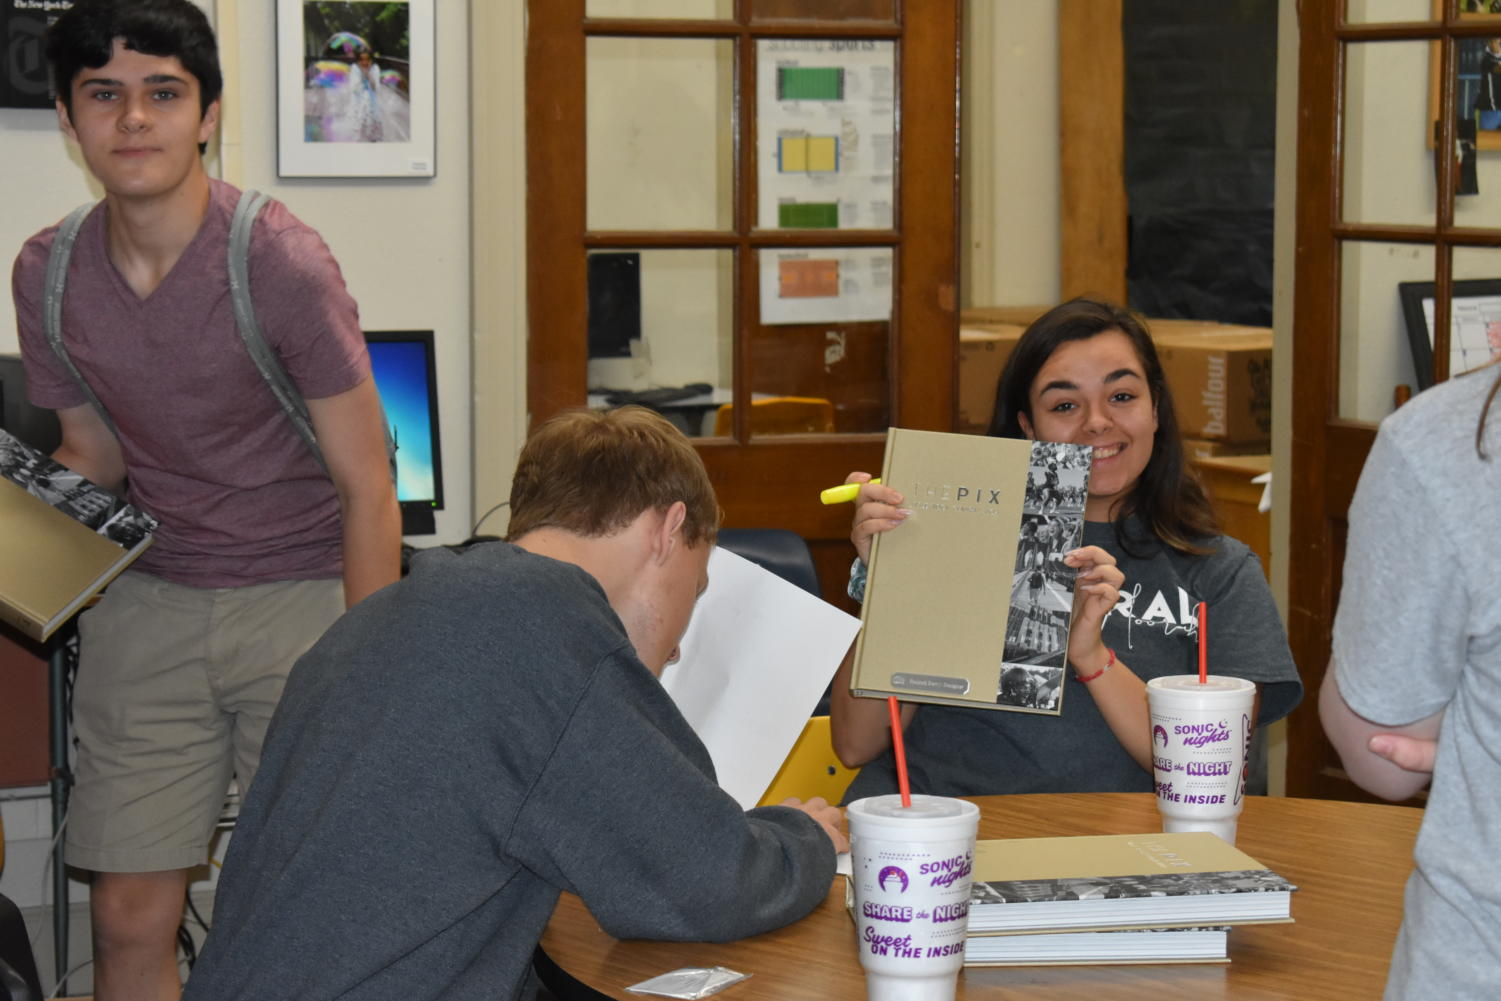 Hannah Berry helps distribute the 2018-2019 yearbook while other staffers, Carson Whaley and Alex Bullers mark off names of those who already picked up their yearbook.